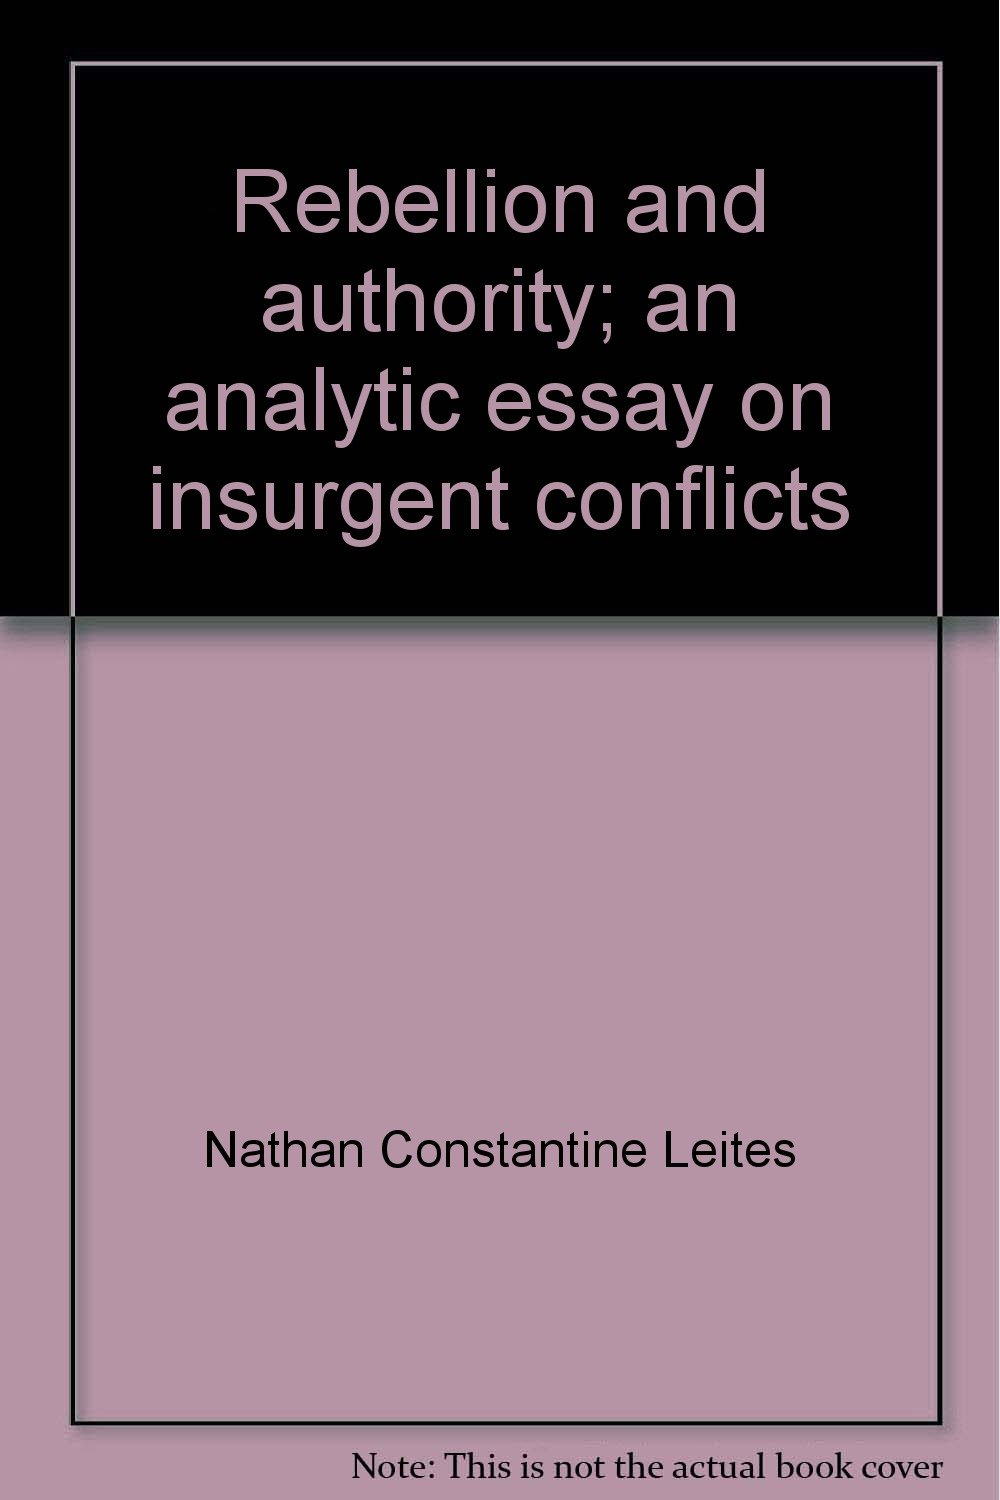 rebellion and authority an analytic essay on insurgent conflicts rebellion and authority an analytic essay on insurgent conflicts markham series in public policy analysis nathan leites jr charles wolf